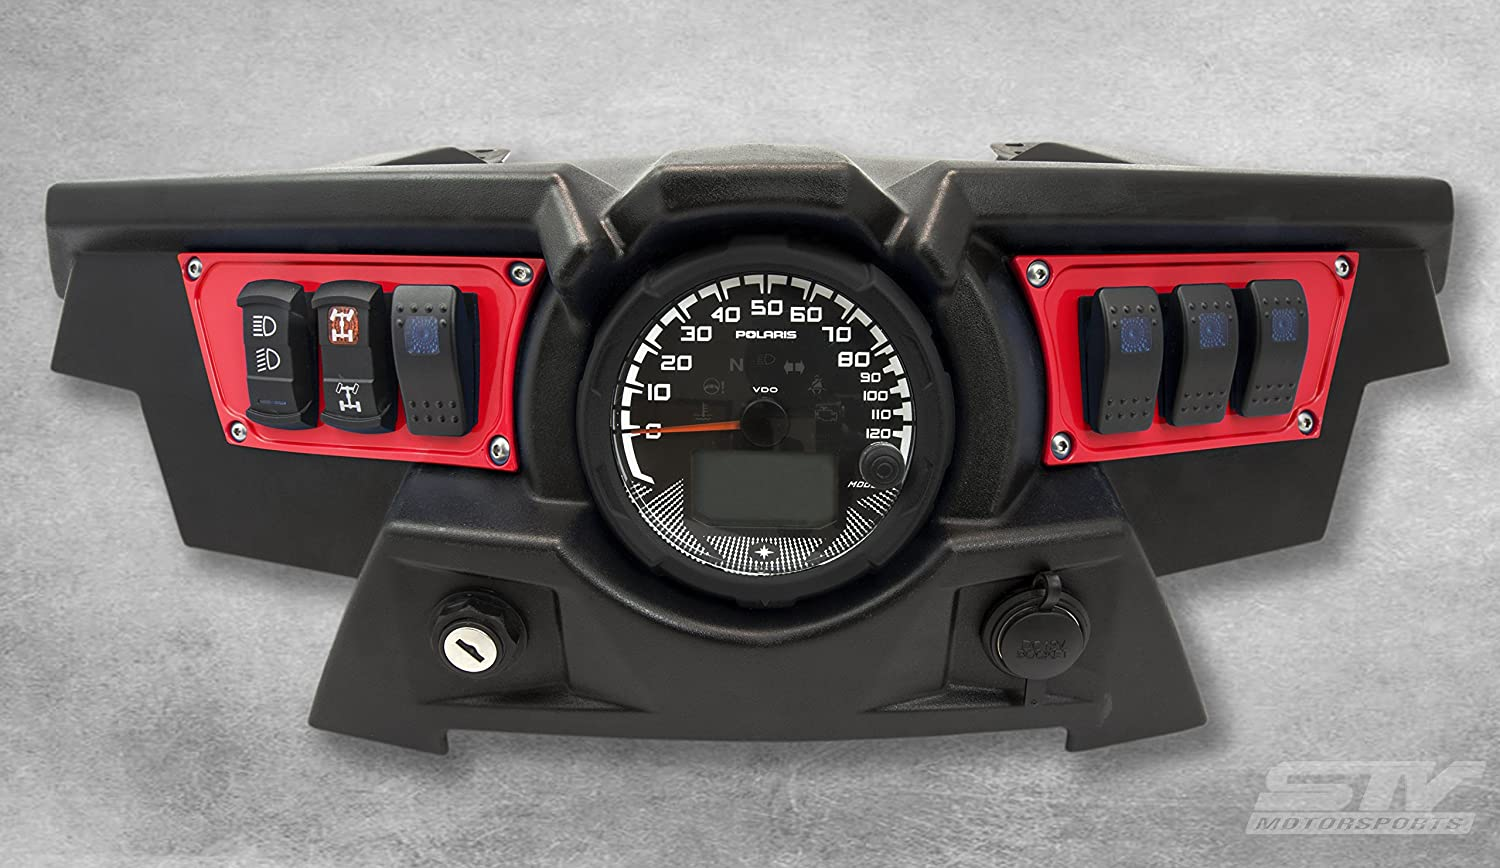 Aluminum Red Dash Panel Polaris w/6 Switches For Polaris RZR XP 1000 with 4 rocker switches included - STVMotorsports® STVMotorsports® 4333041551